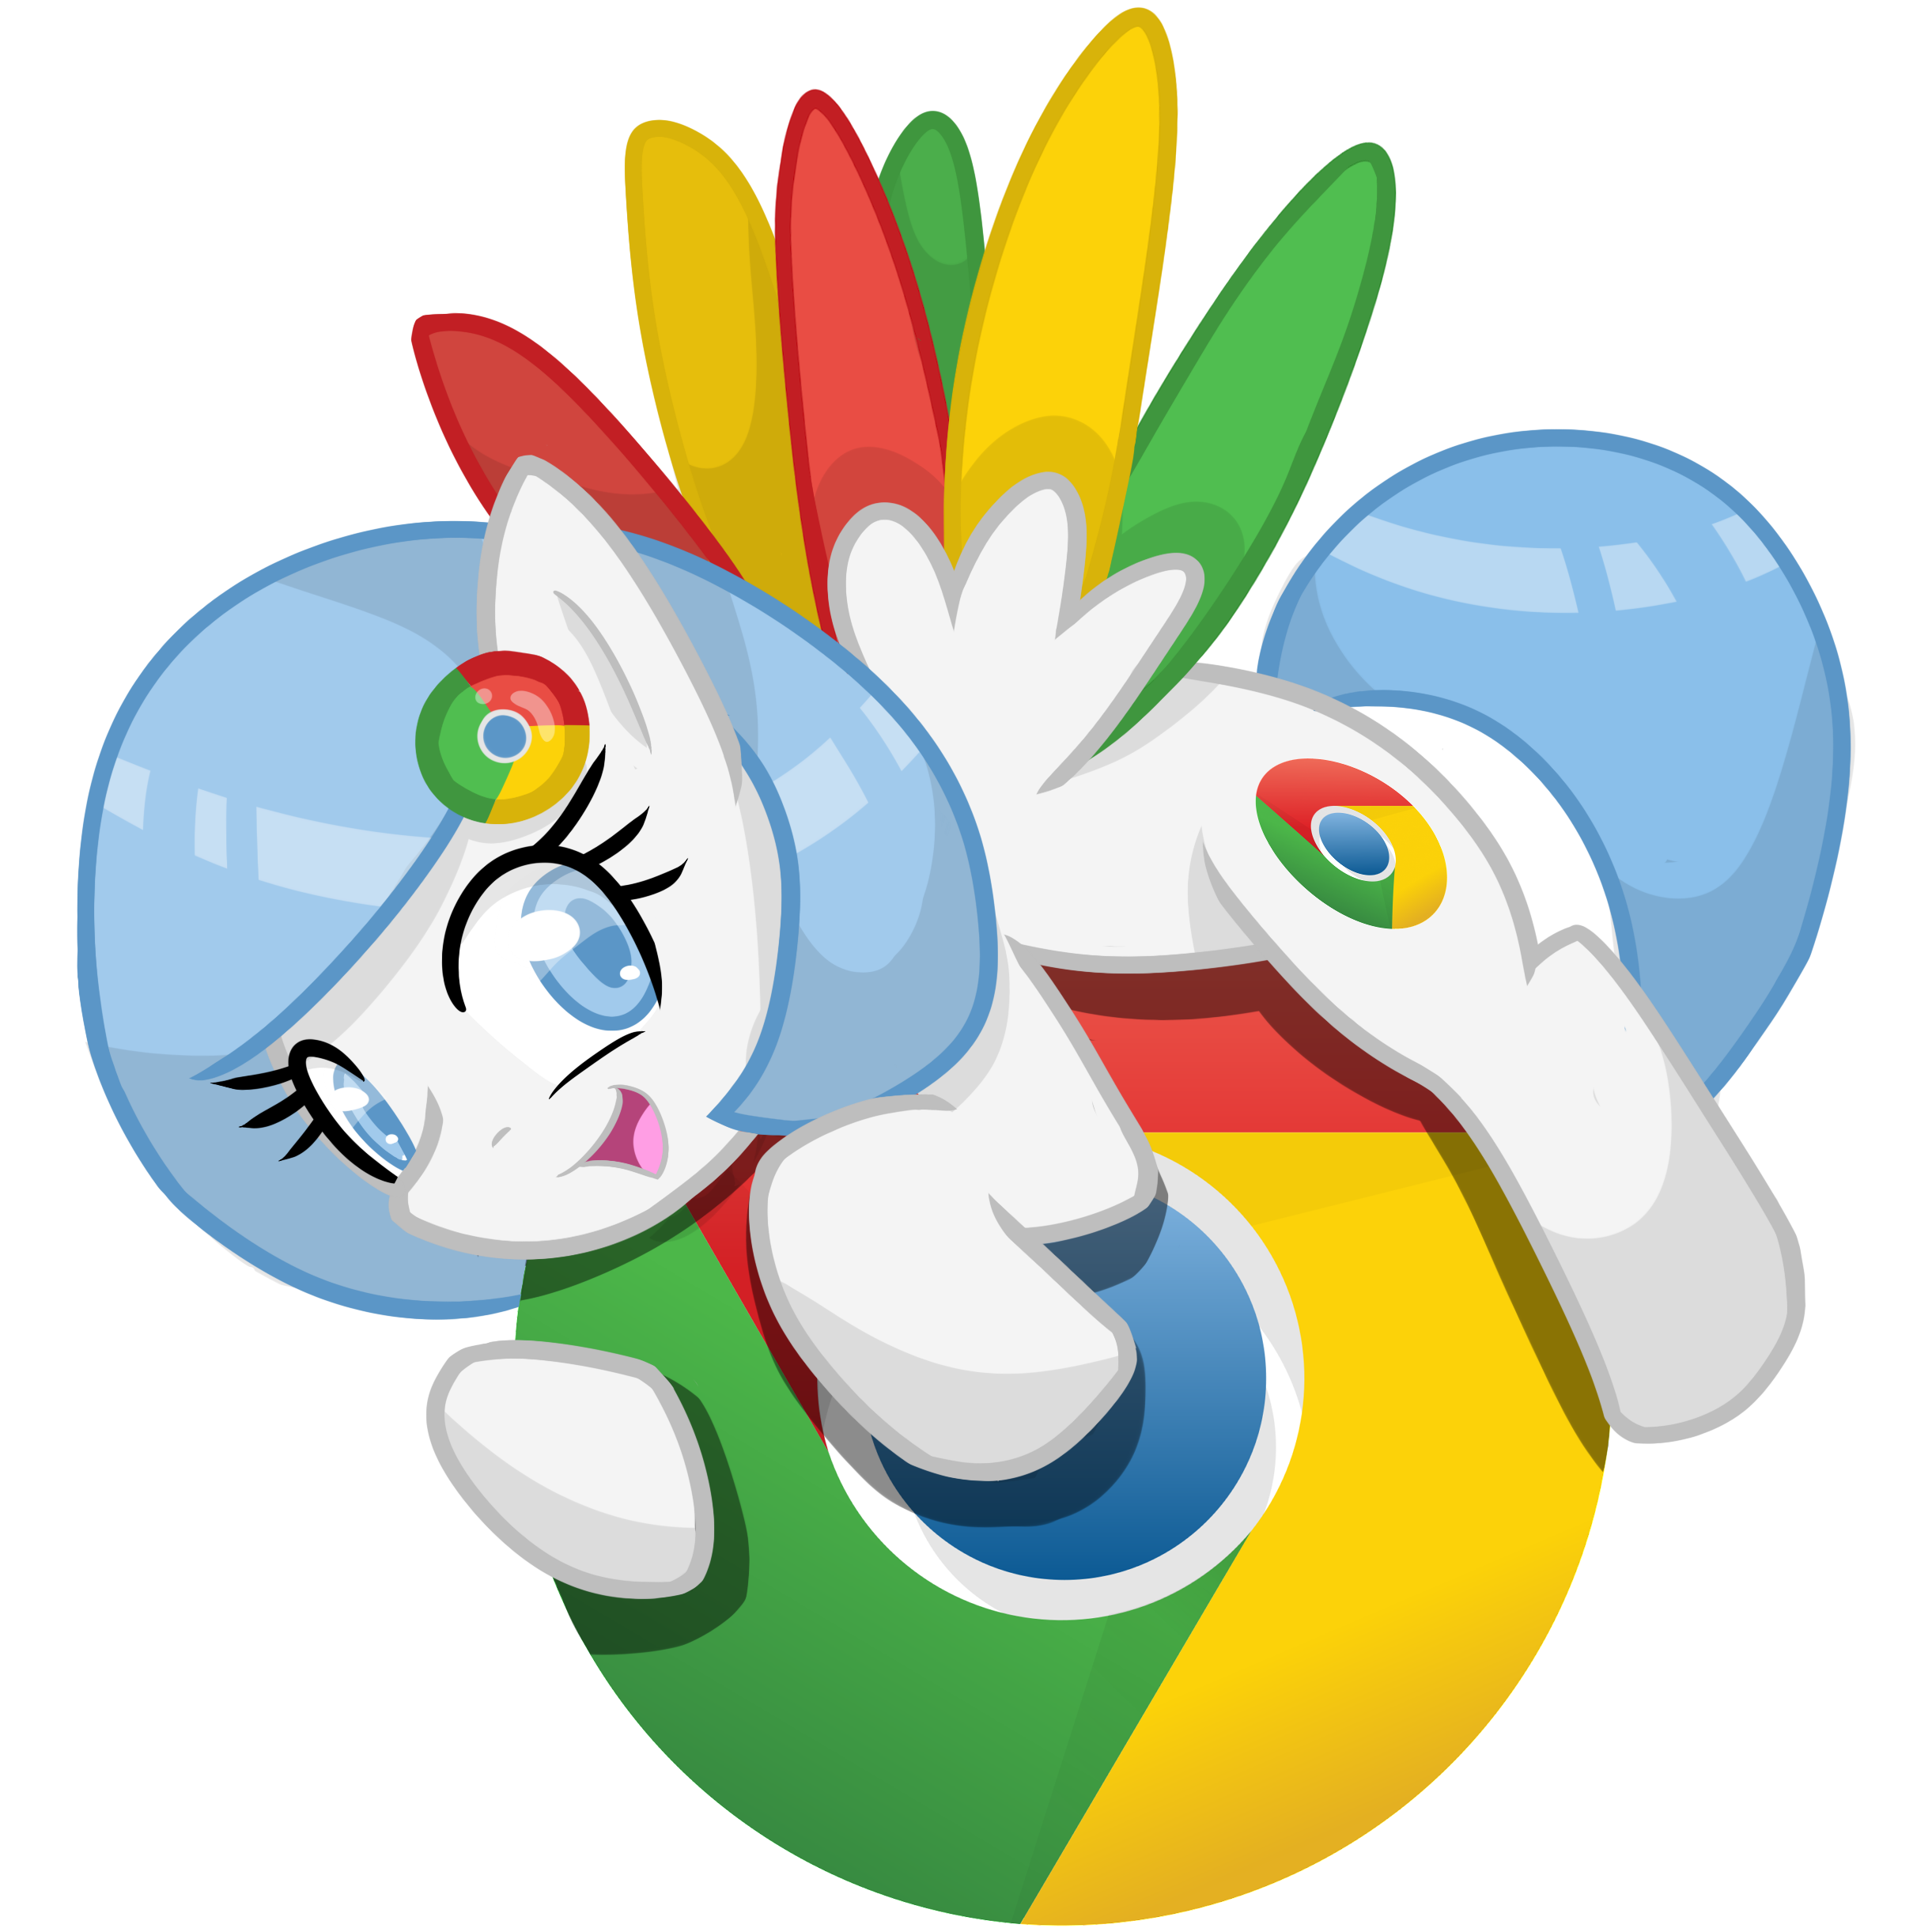 chromepony (google chrome icon) by EDplus on DeviantArt.